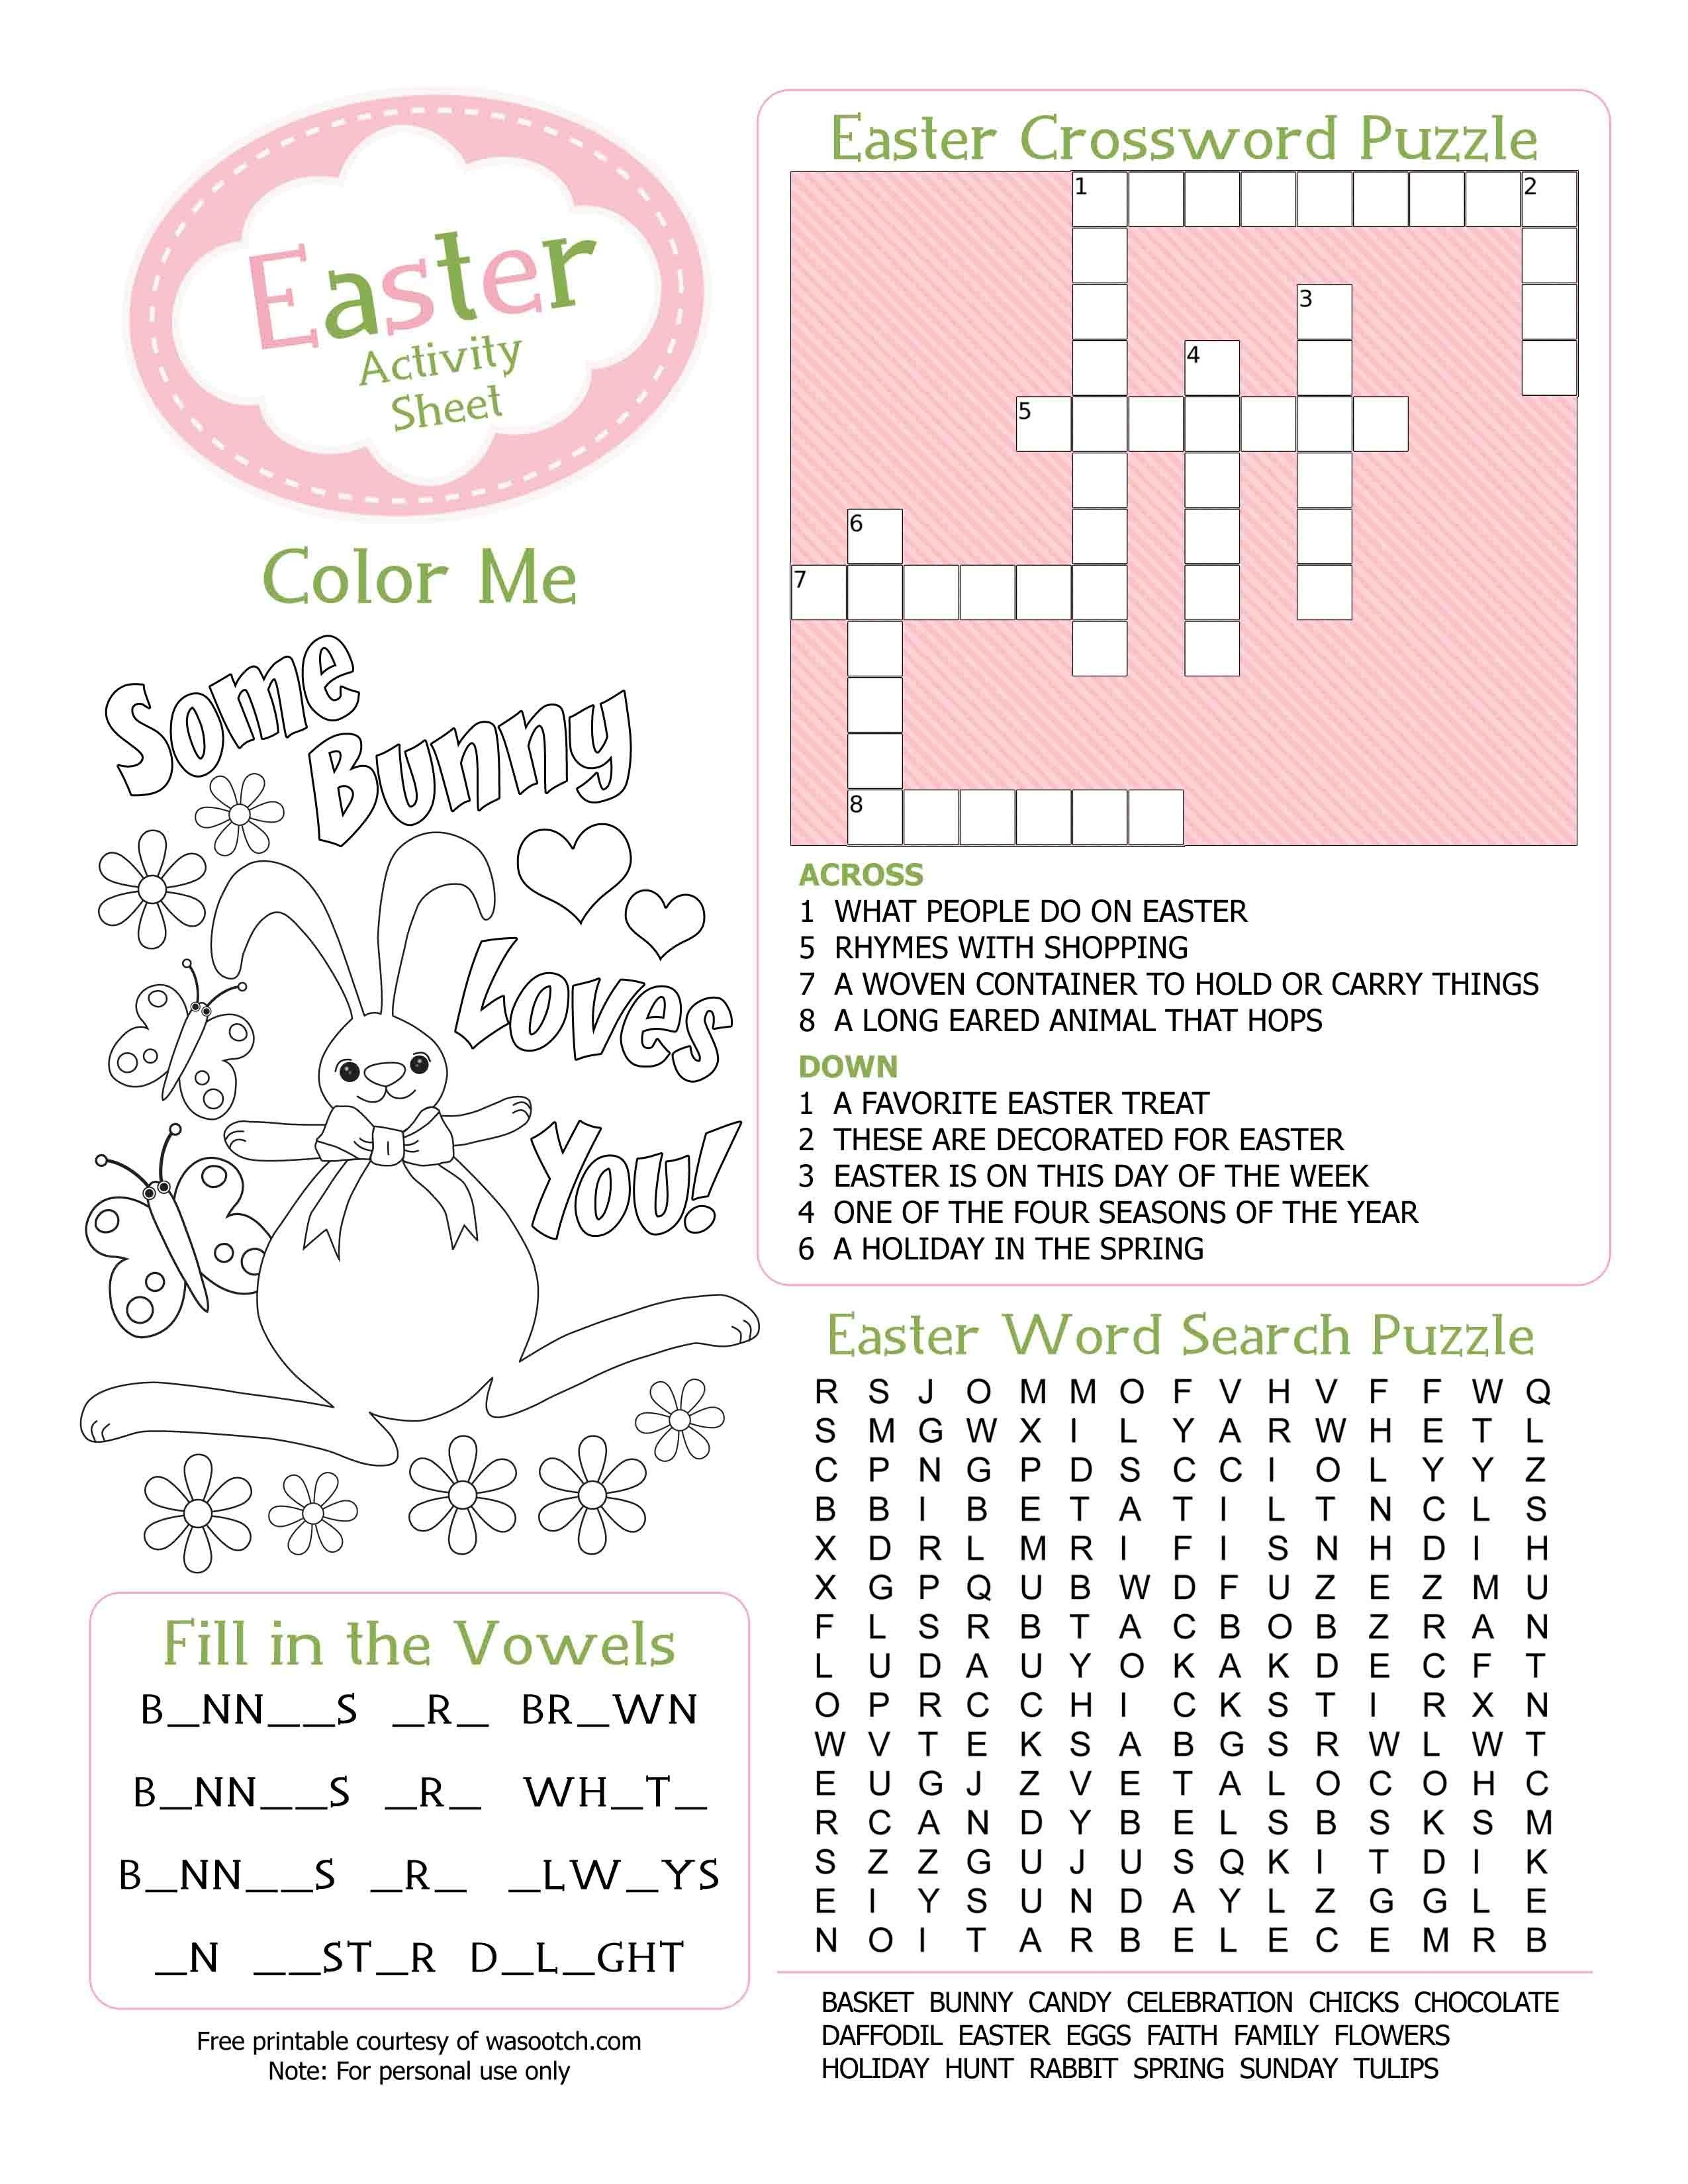 Easter Kid's Activity Sheet Free Printables Available @party - Free Printable Kid Activities Worksheets